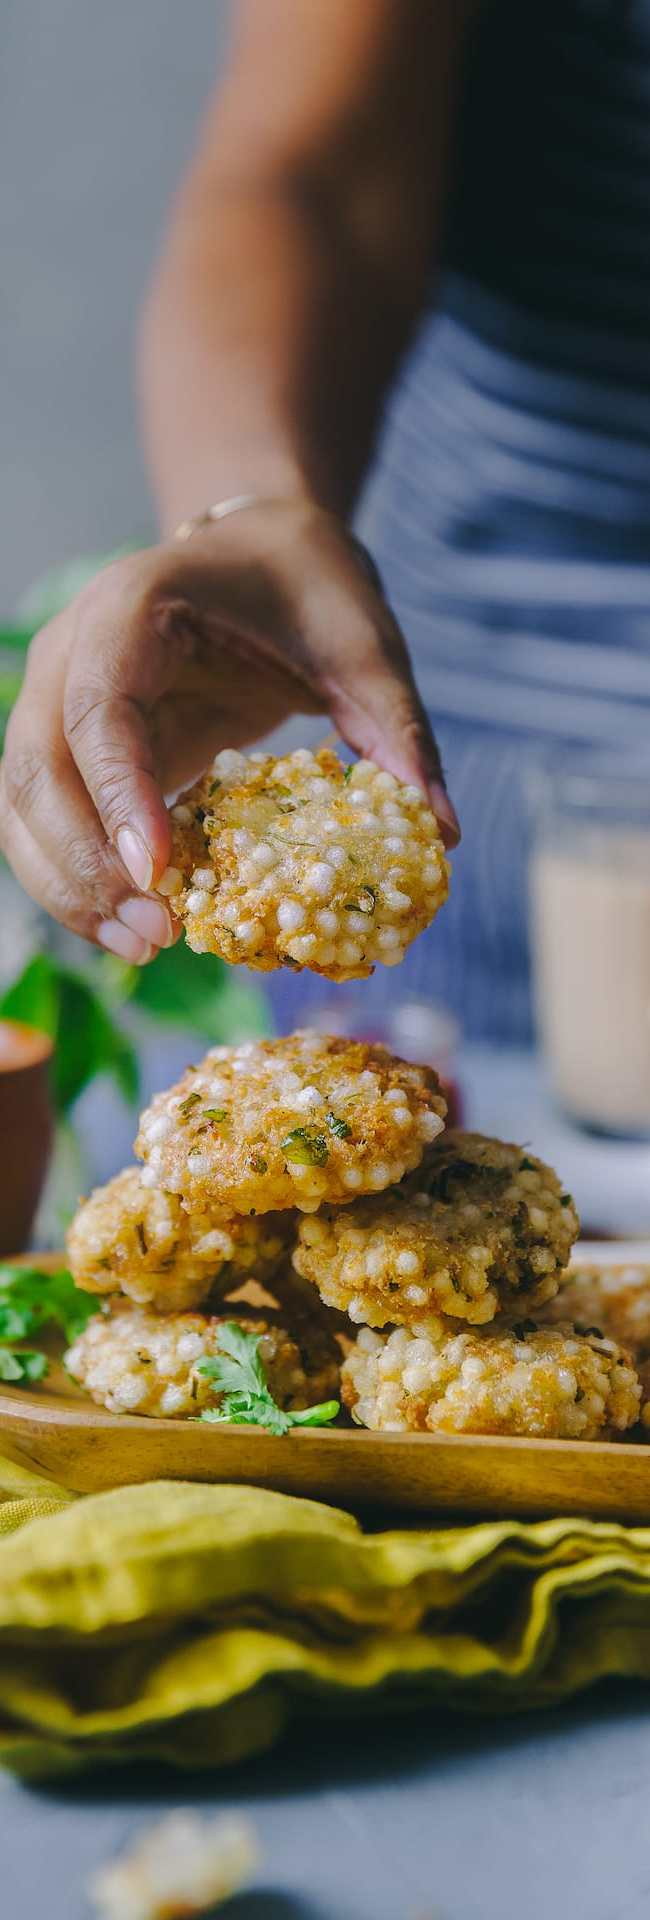 Sabudana Vada Fried and Baked #foodphotography #glutenfree #snacks #fingerfood